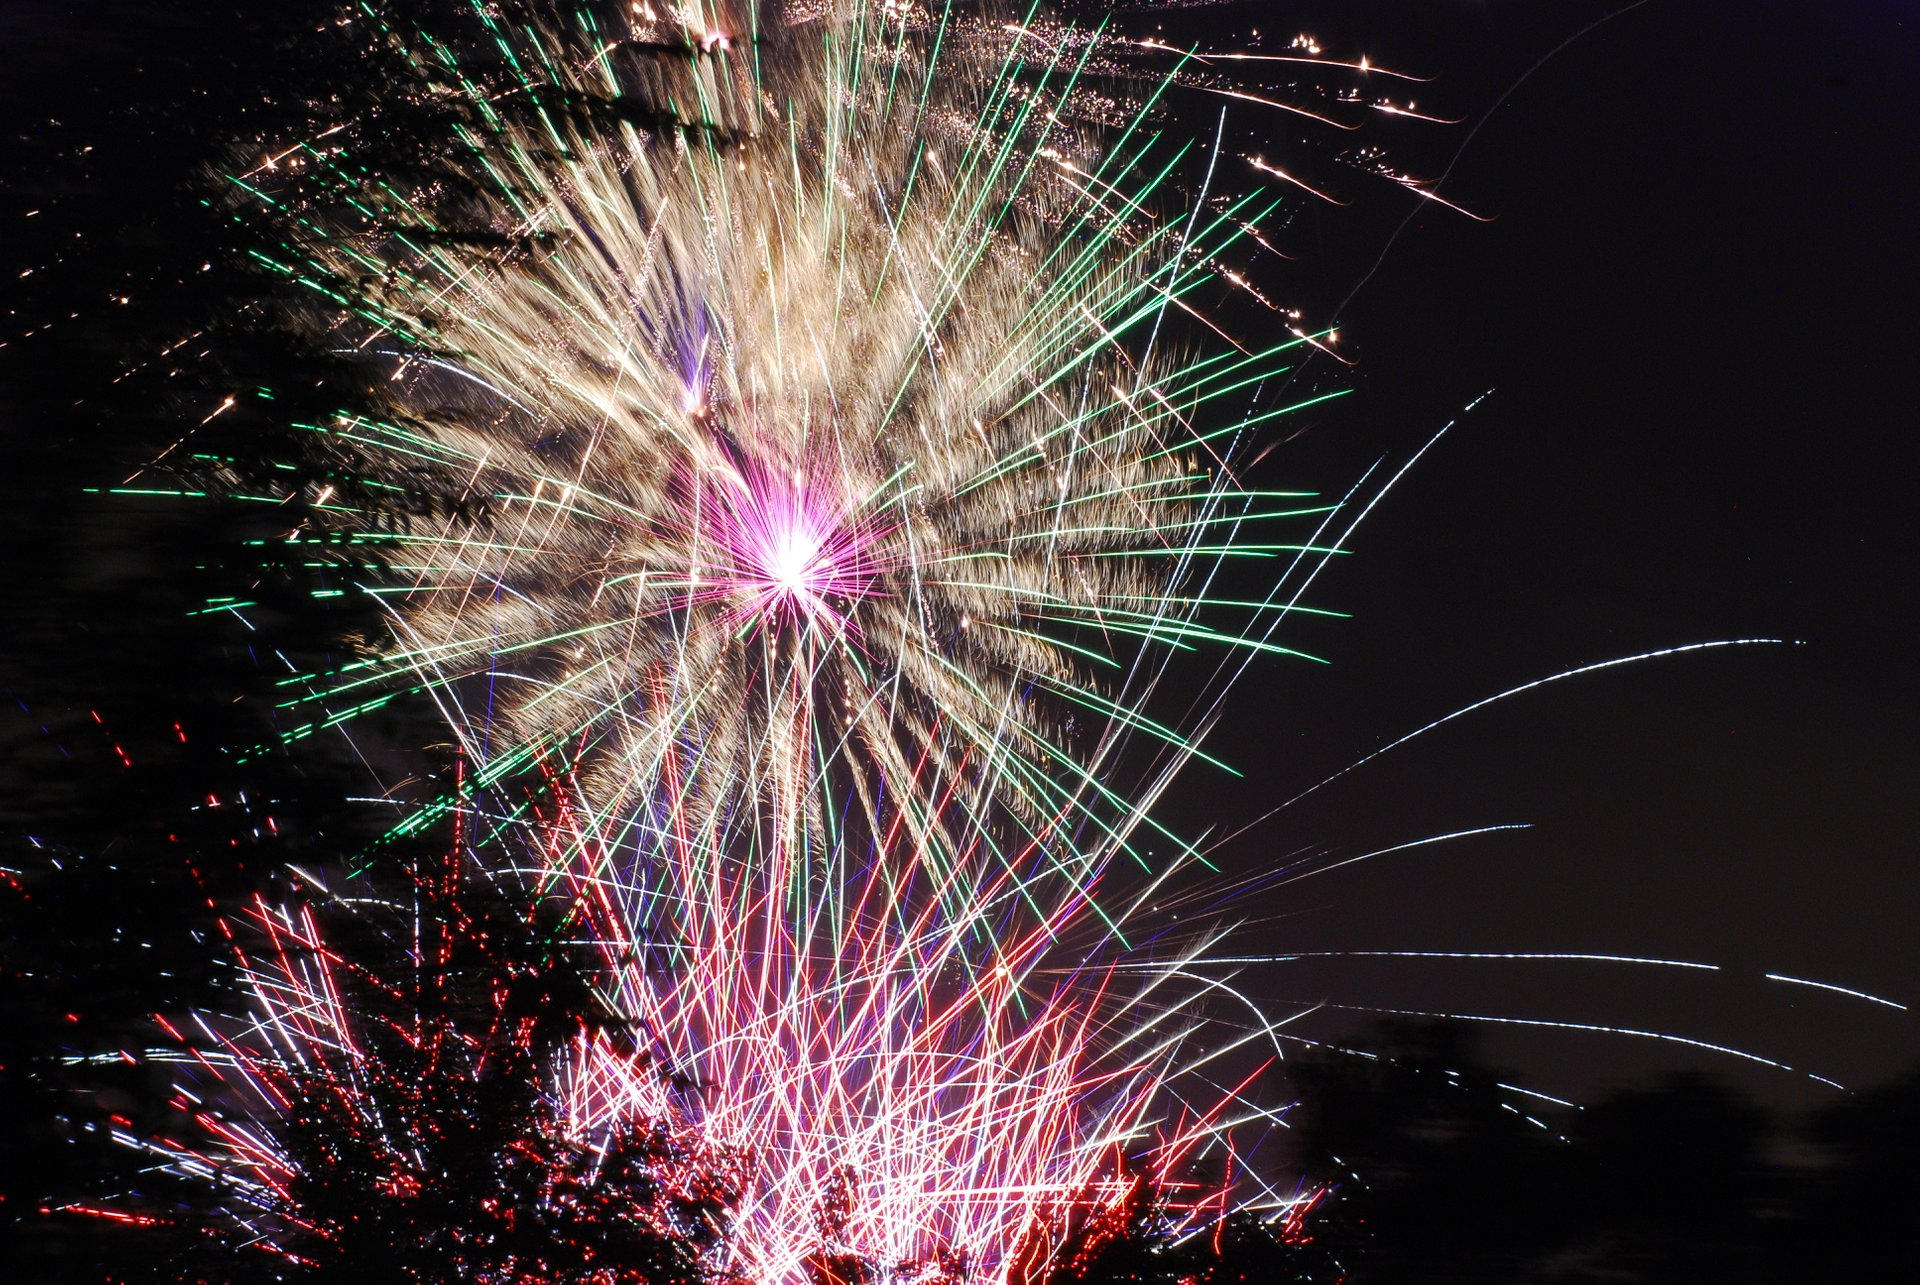 Fireworks at the Sugarhouse Park in Salt Lake City 2020